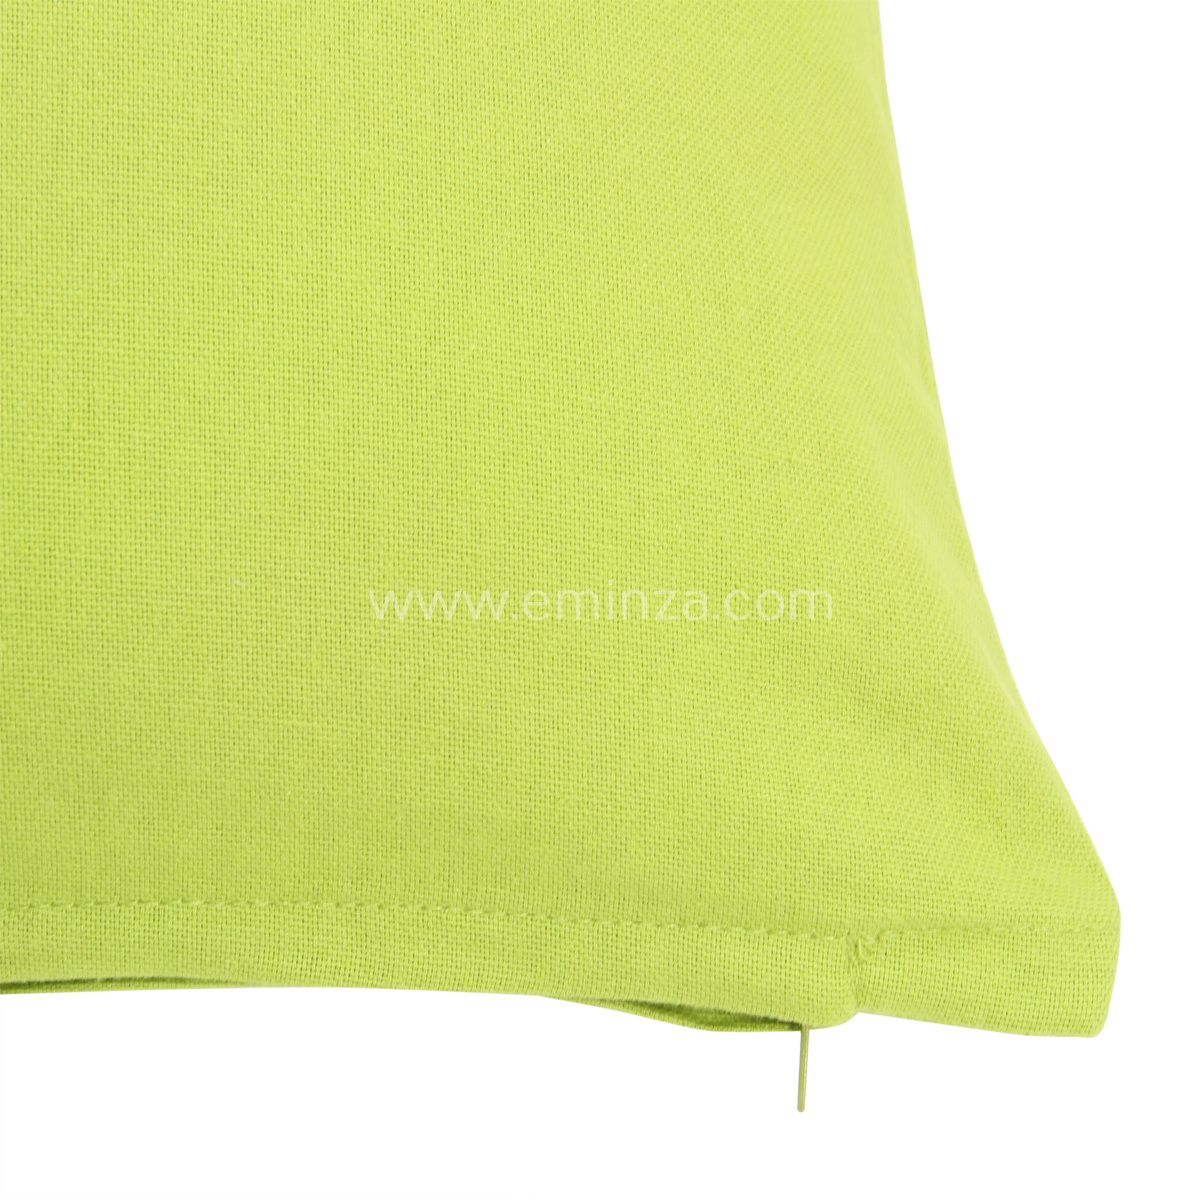 coussin 40 cm etna vert anis coussin eminza. Black Bedroom Furniture Sets. Home Design Ideas